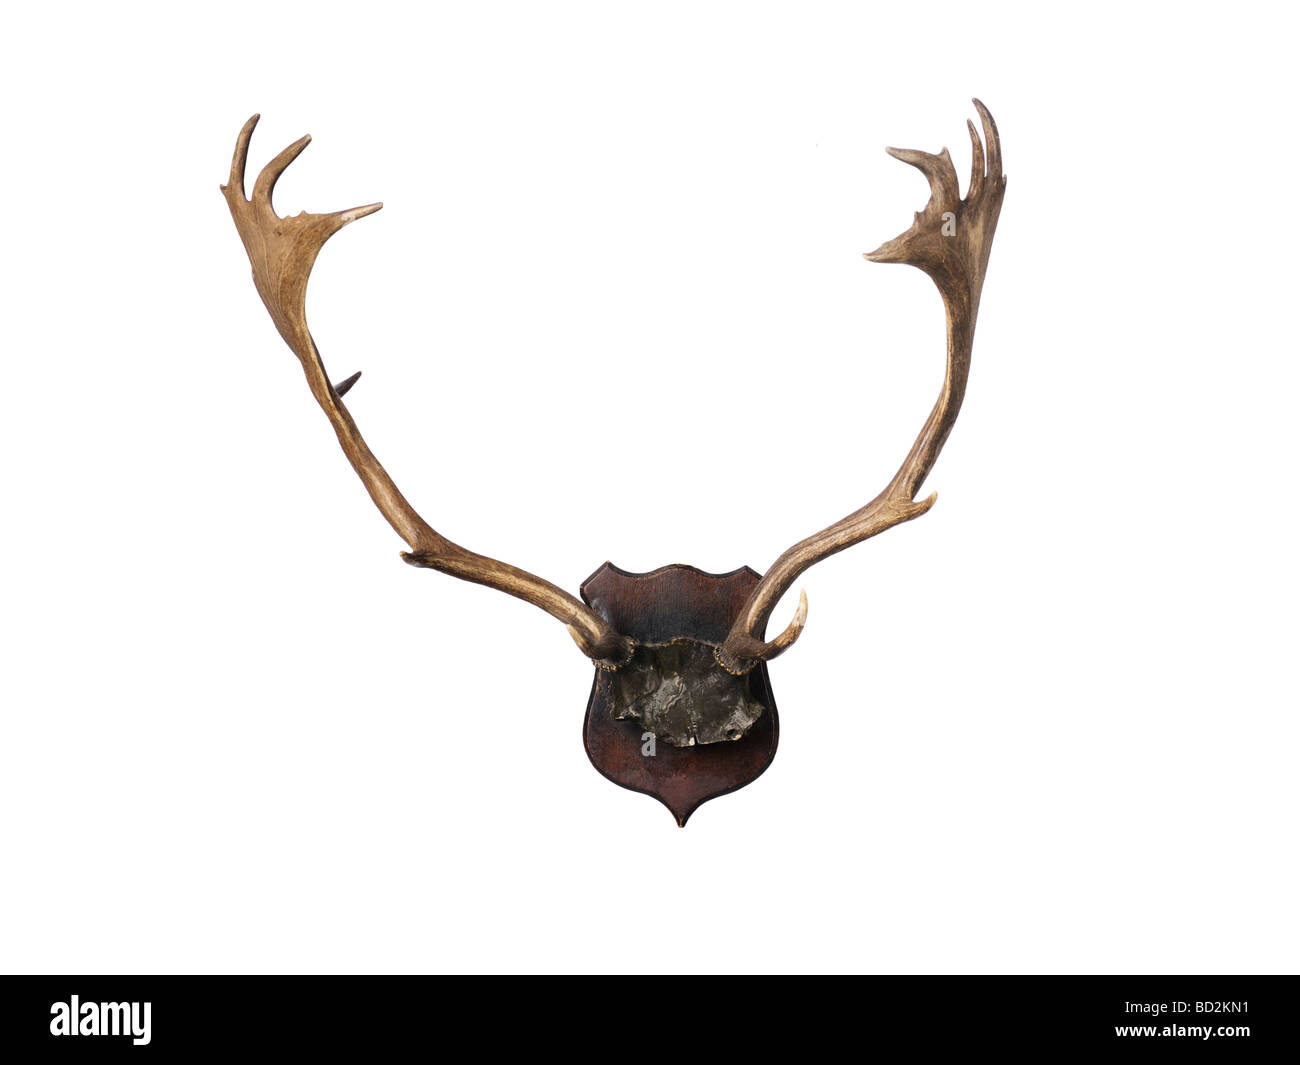 Antlers horn - Stock Image